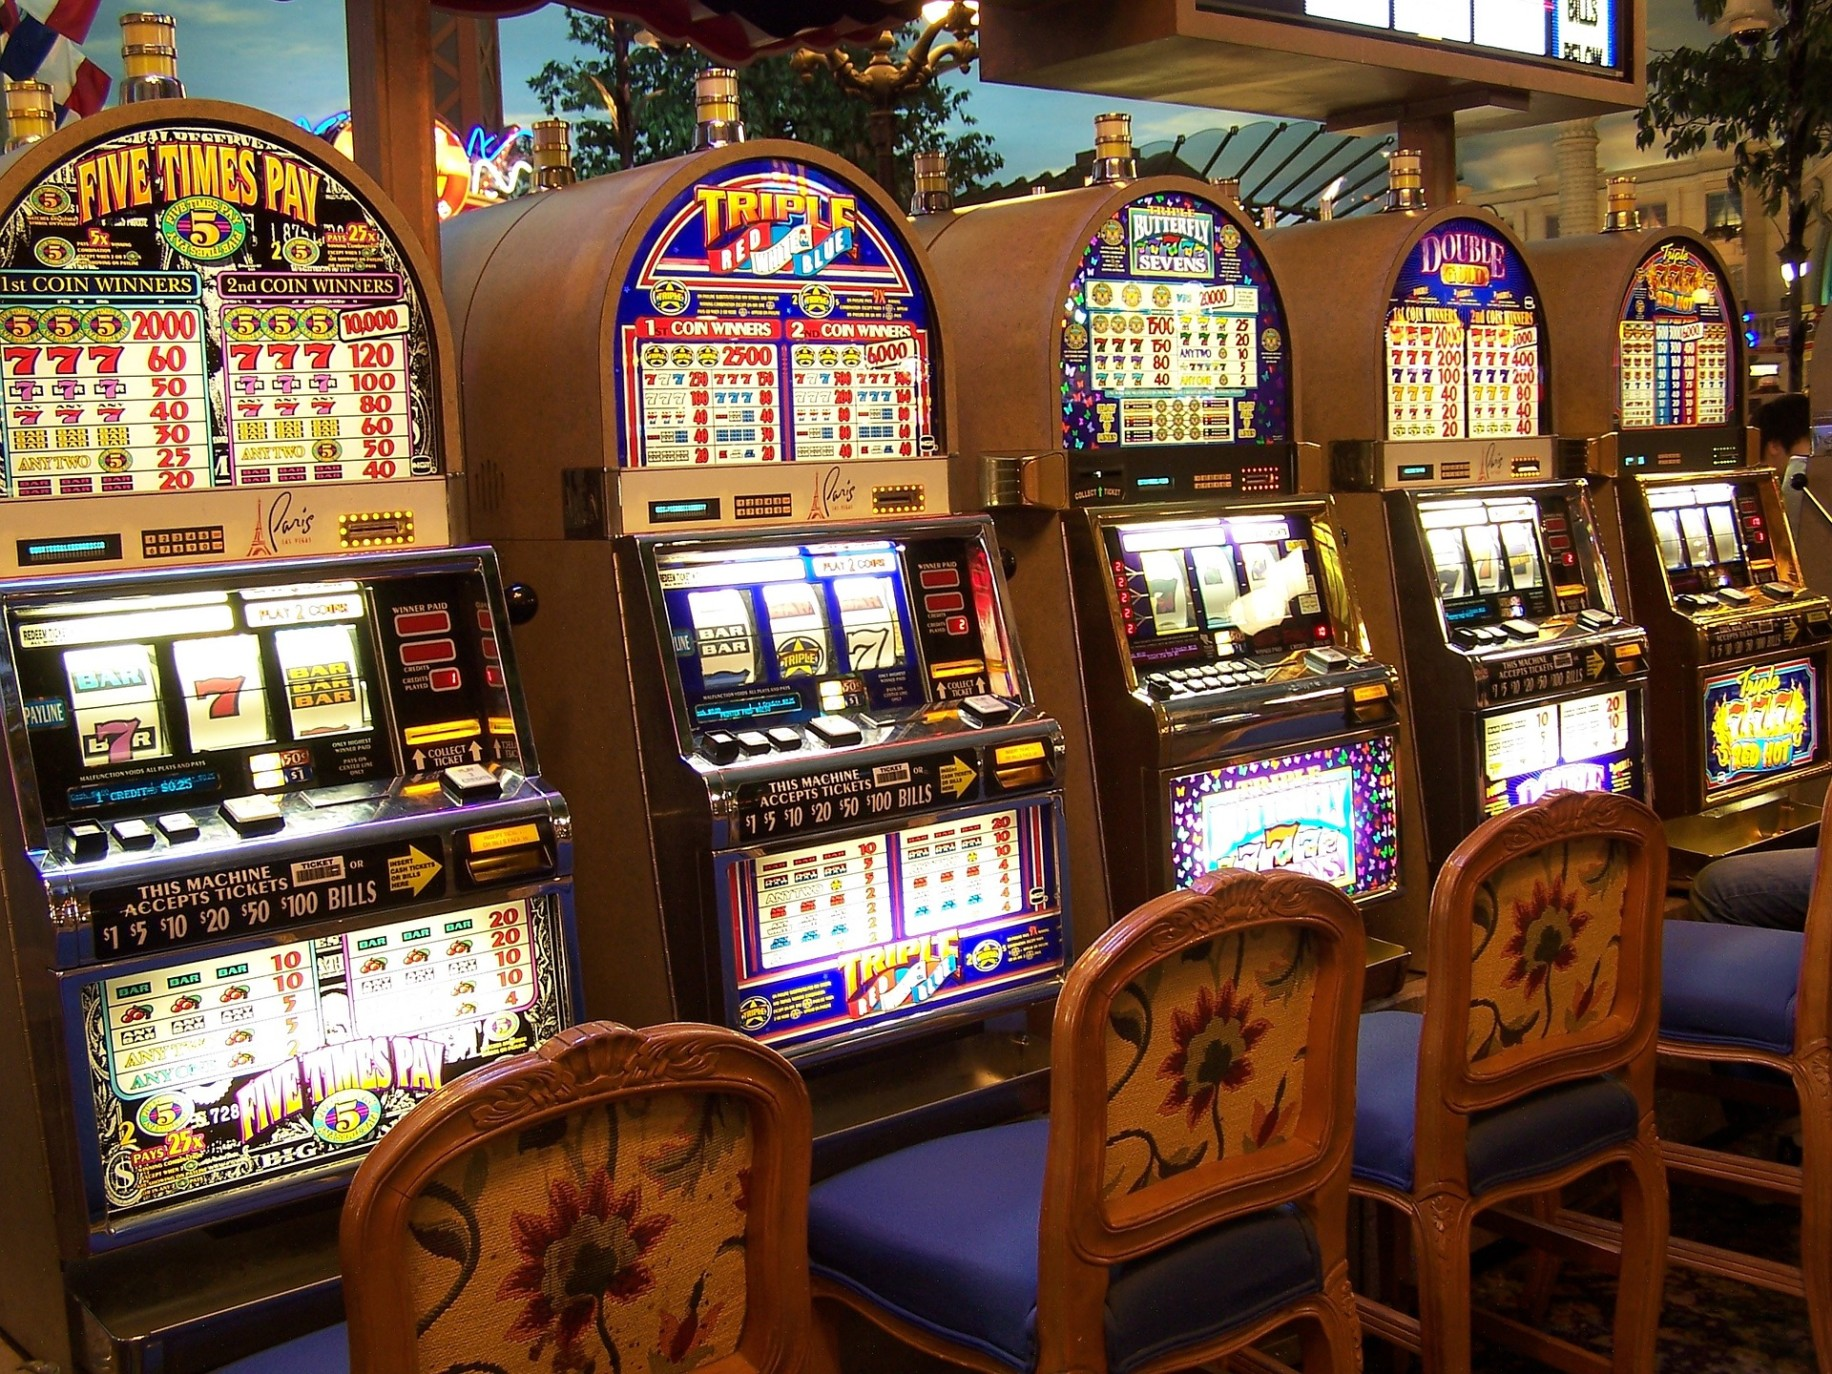 Valuable Tips for Players on Kadobet and Other Online Casinos